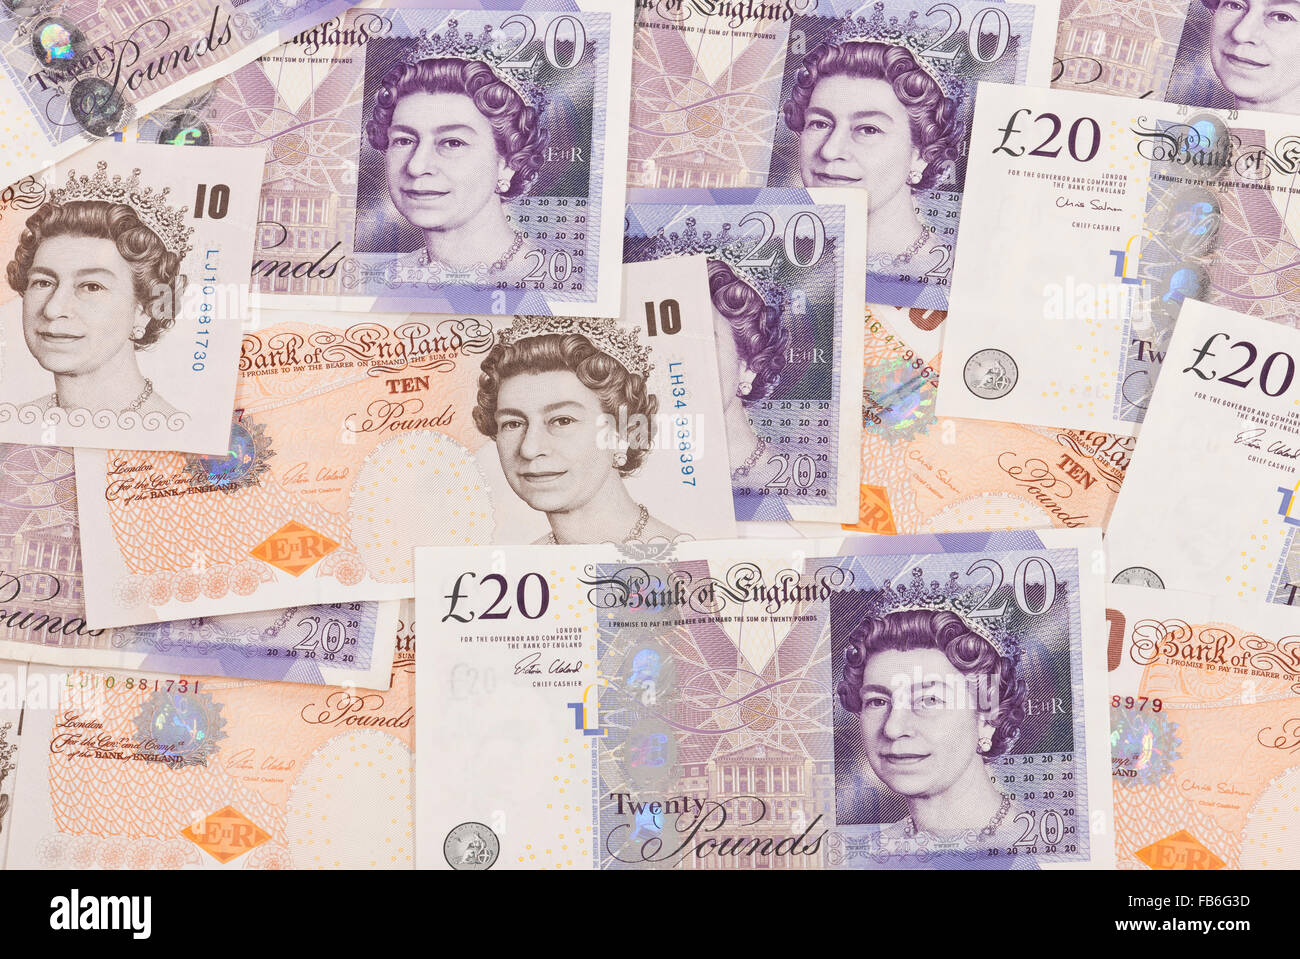 Currency of Great Britain, 10 and 20 pound notes - Stock Image